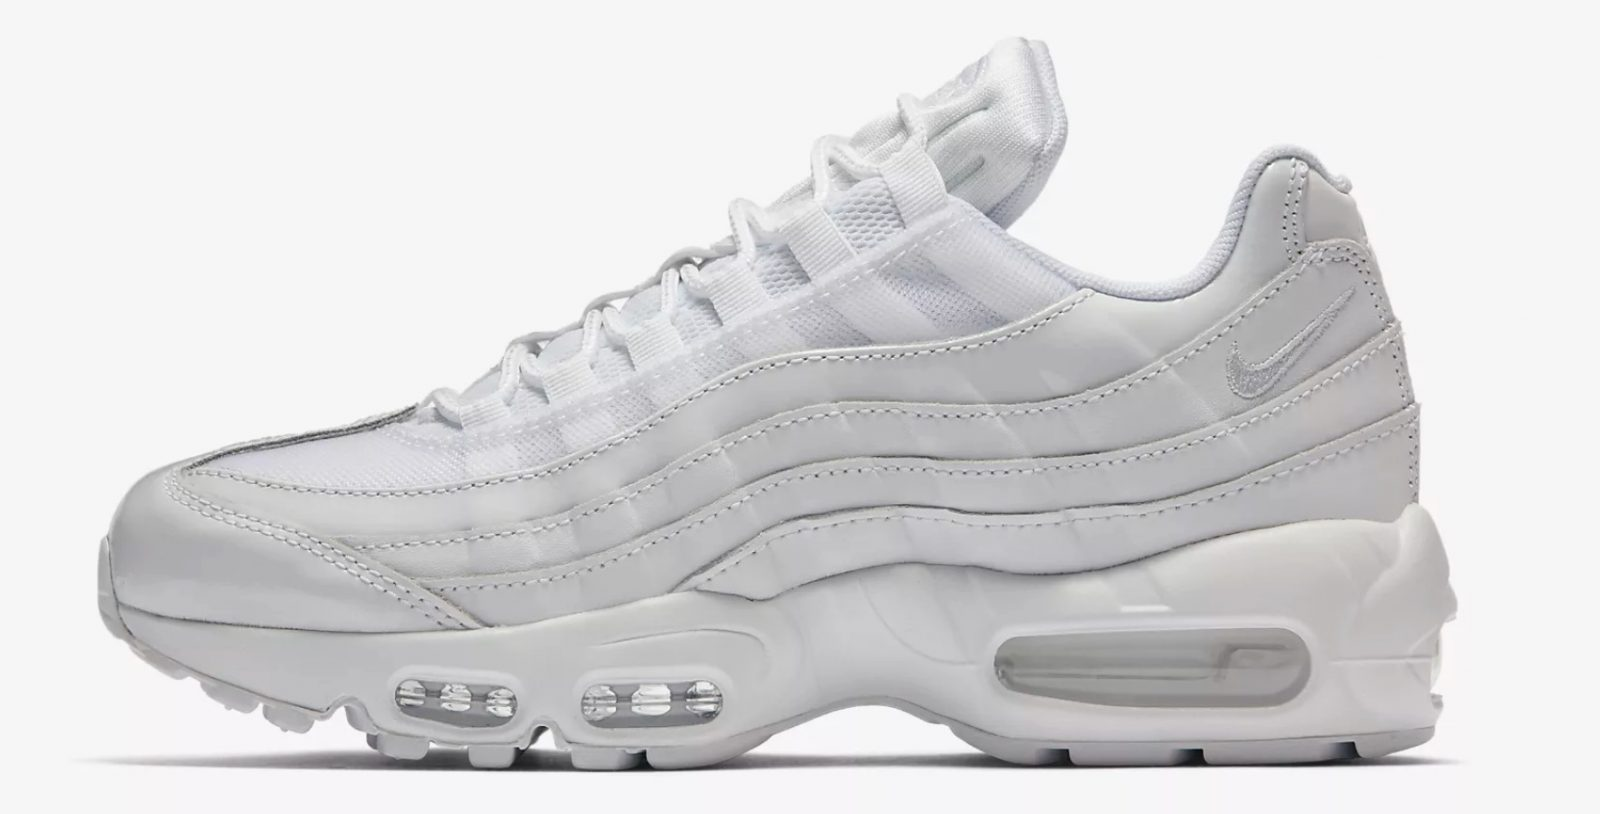 Nike's Air Max 95 Gets Coated In White